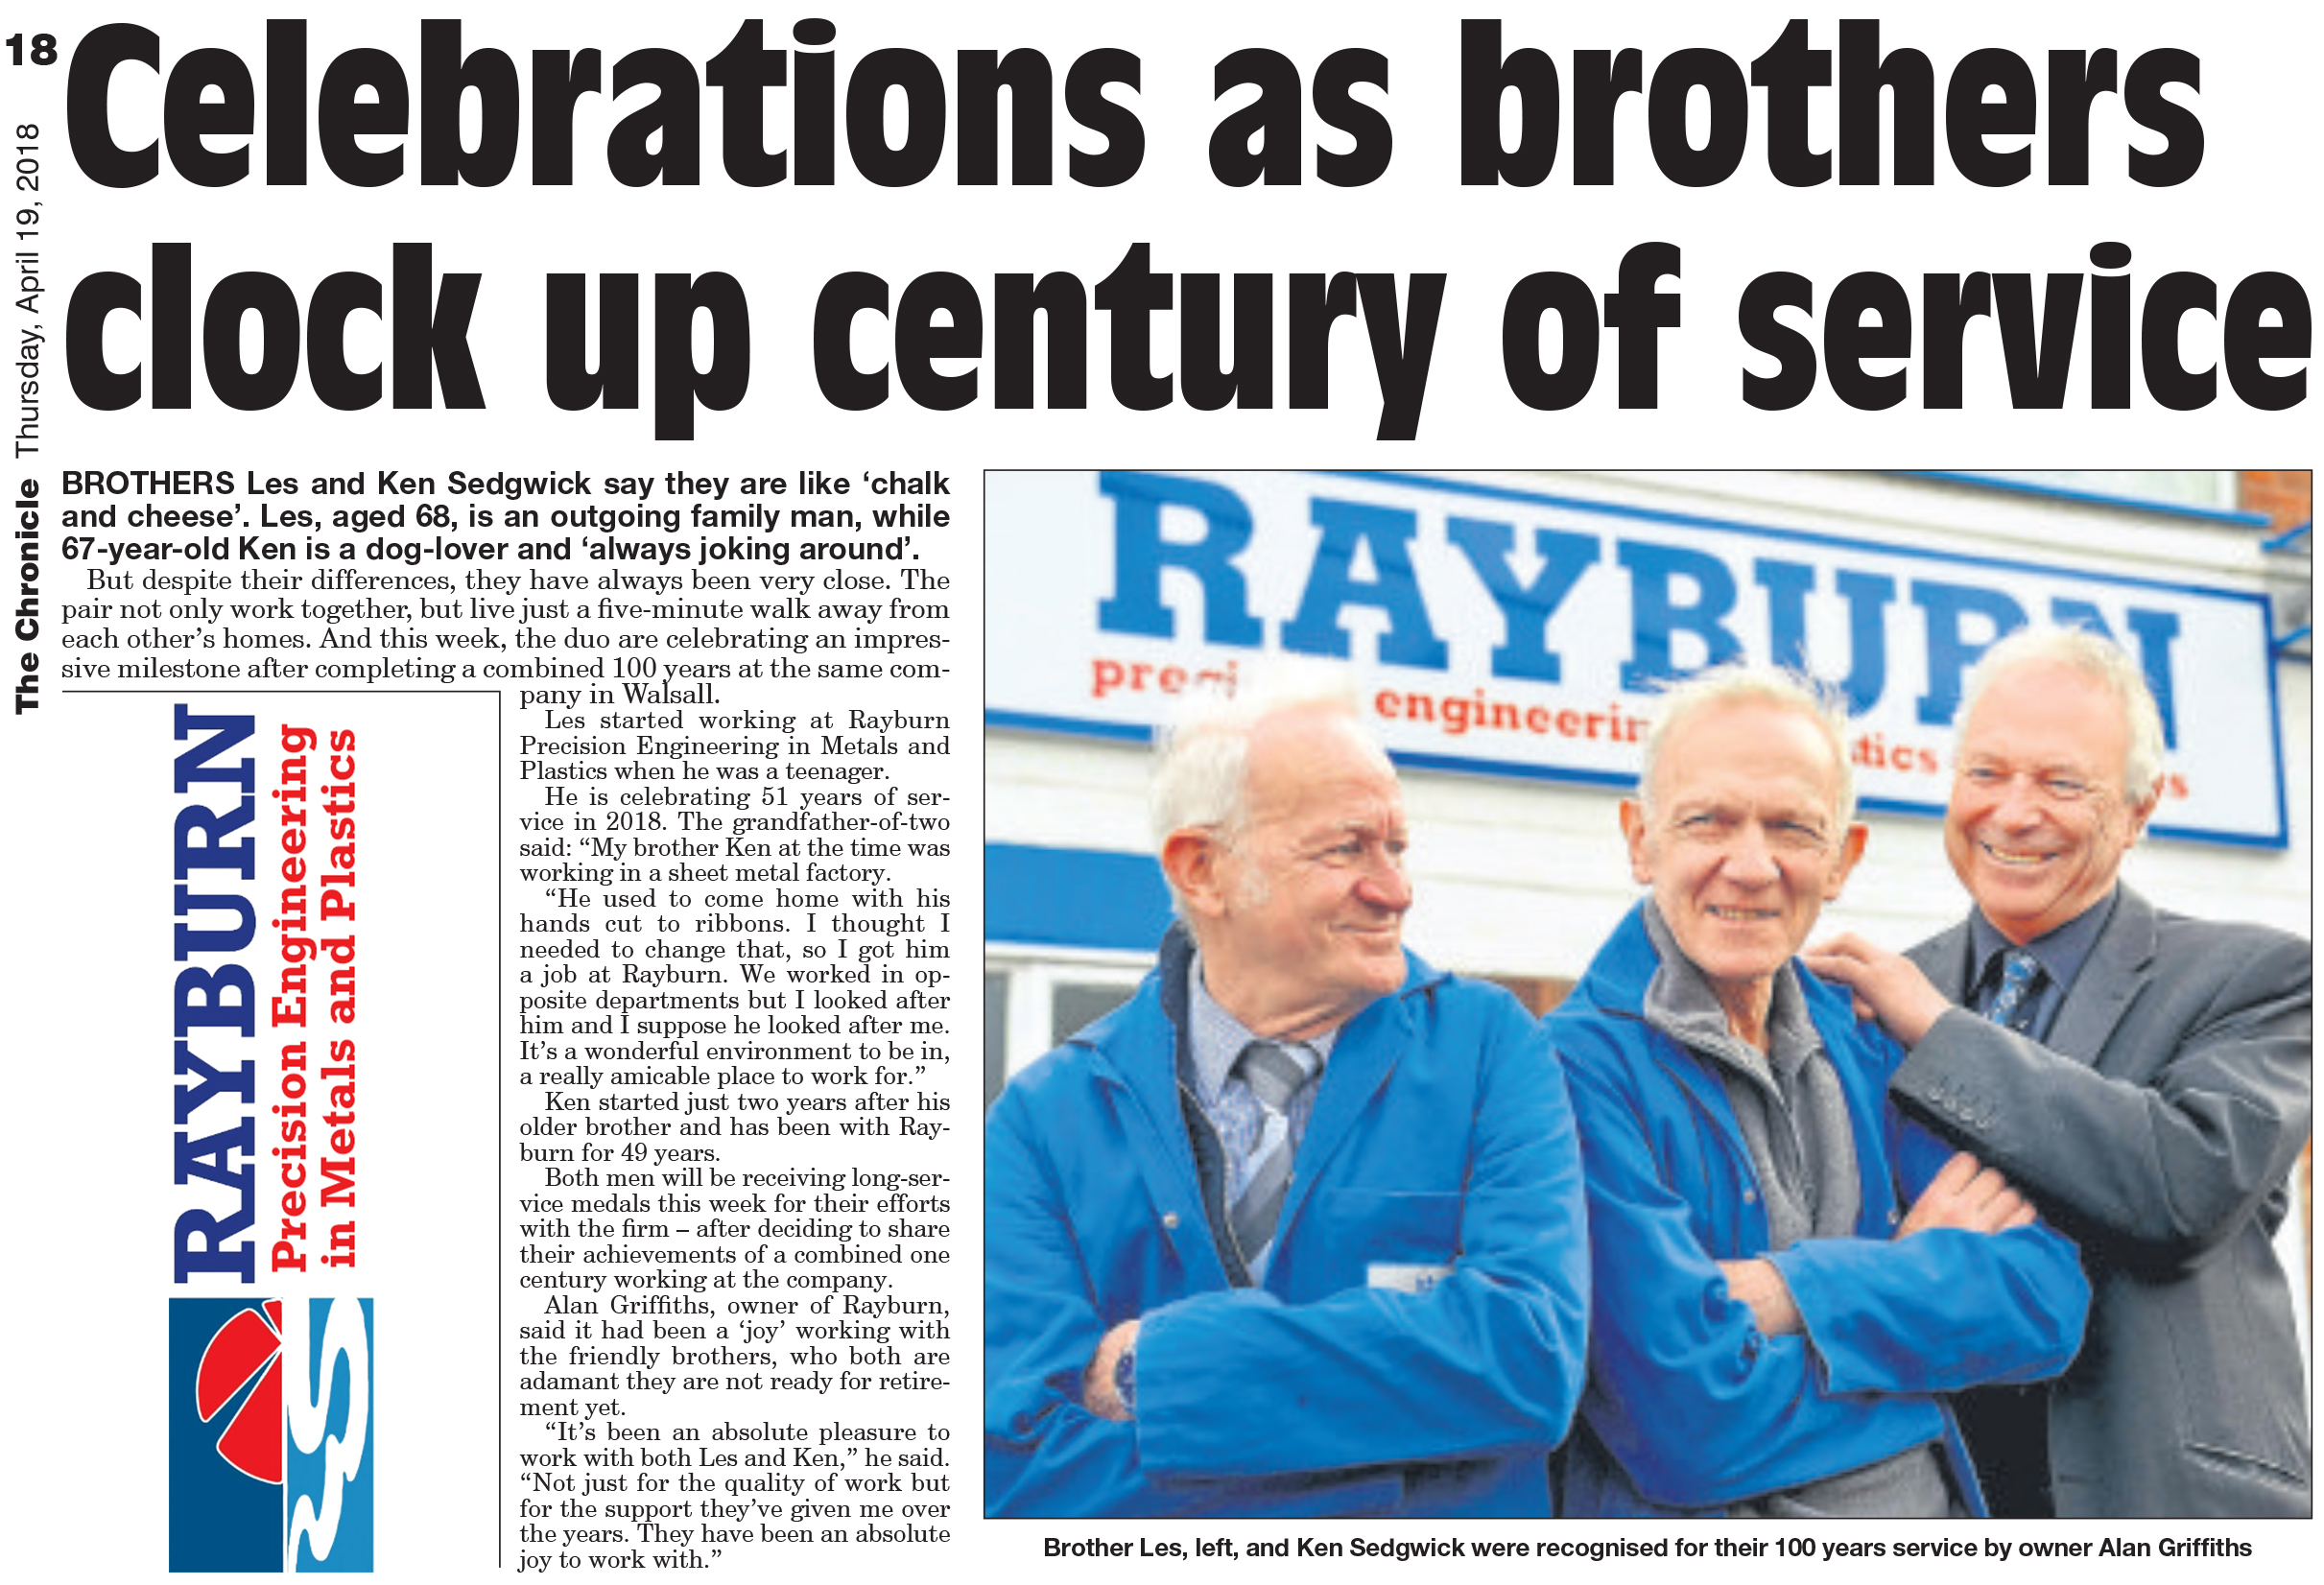 KEN AND LES SEDGWICK BROTHERS CELEBRATE 100 YEARS OF SERVICE